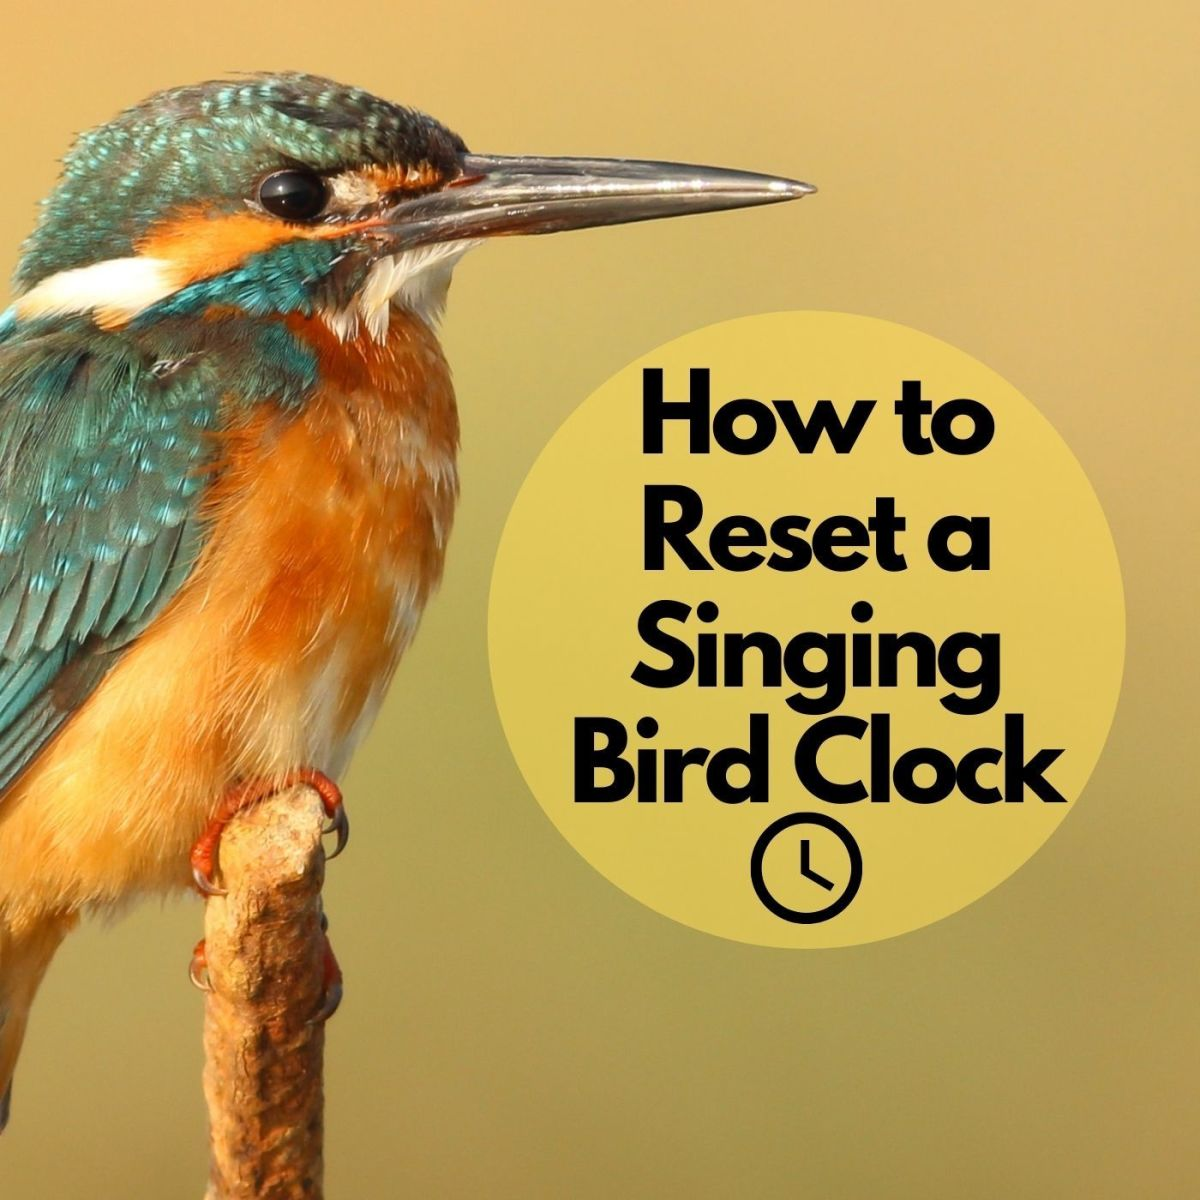 Bird clocks are a great addition to any home.